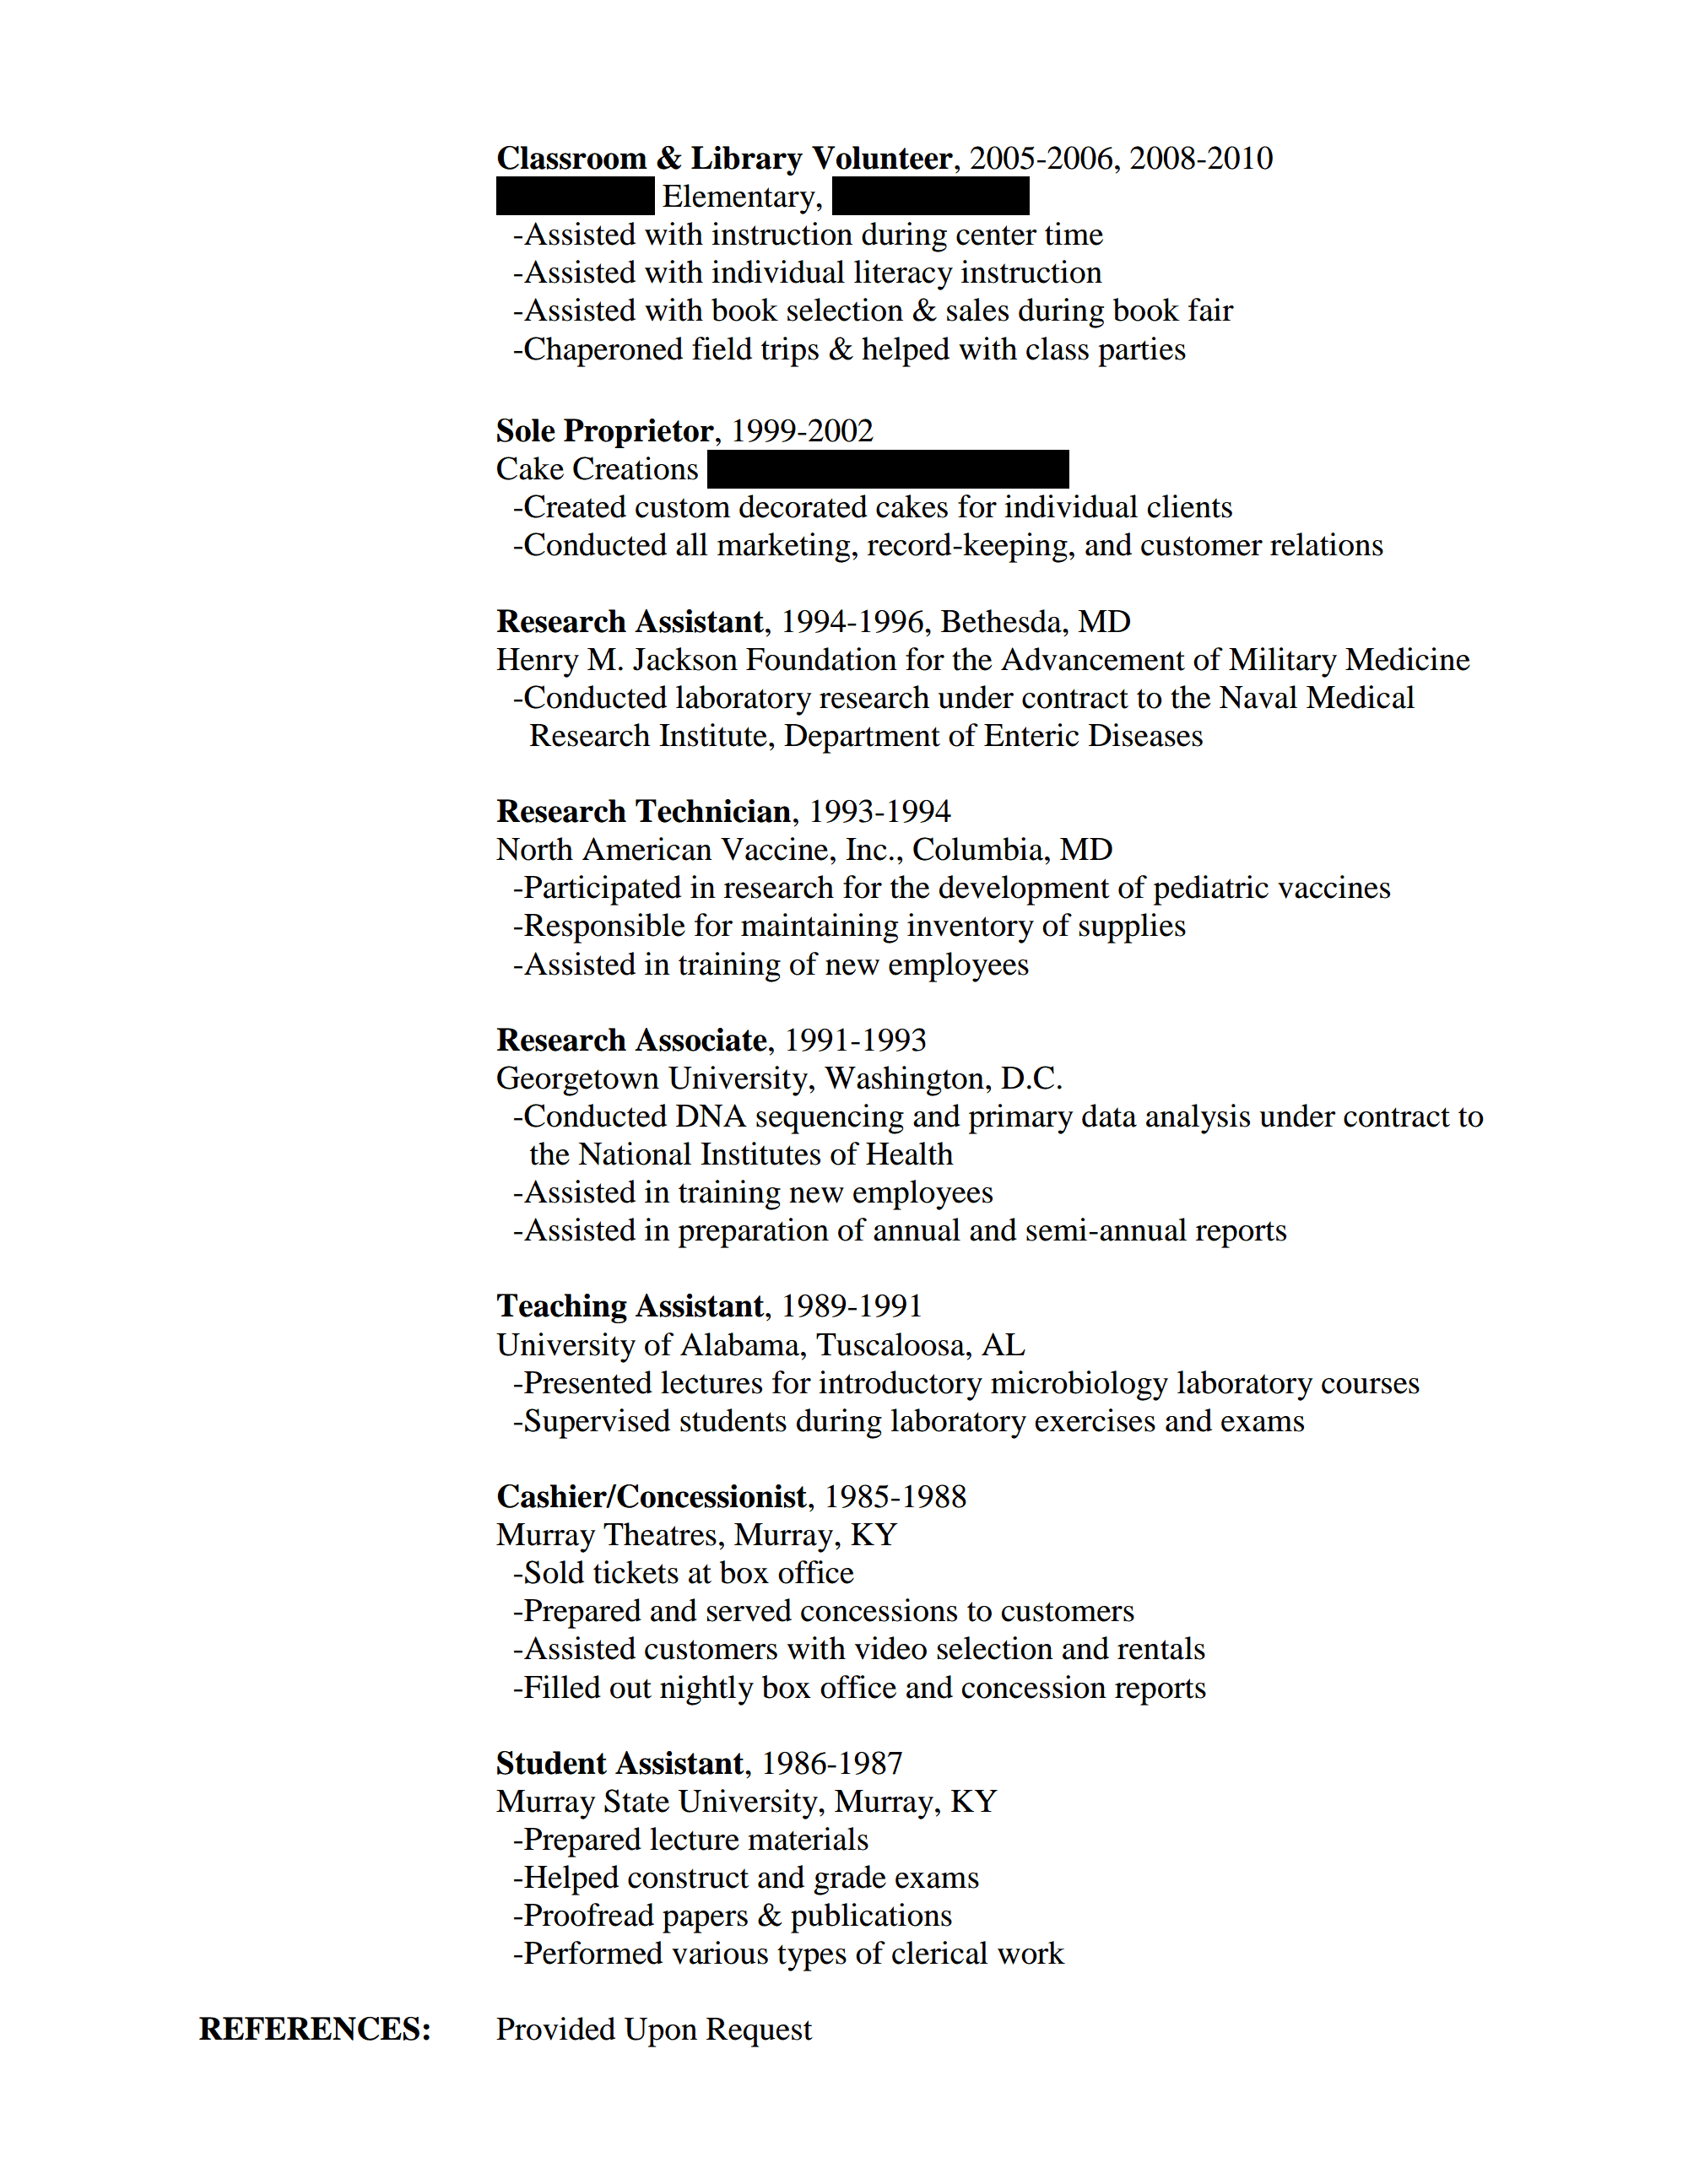 Stay At Home Mom Sample Resume Delightful Writing